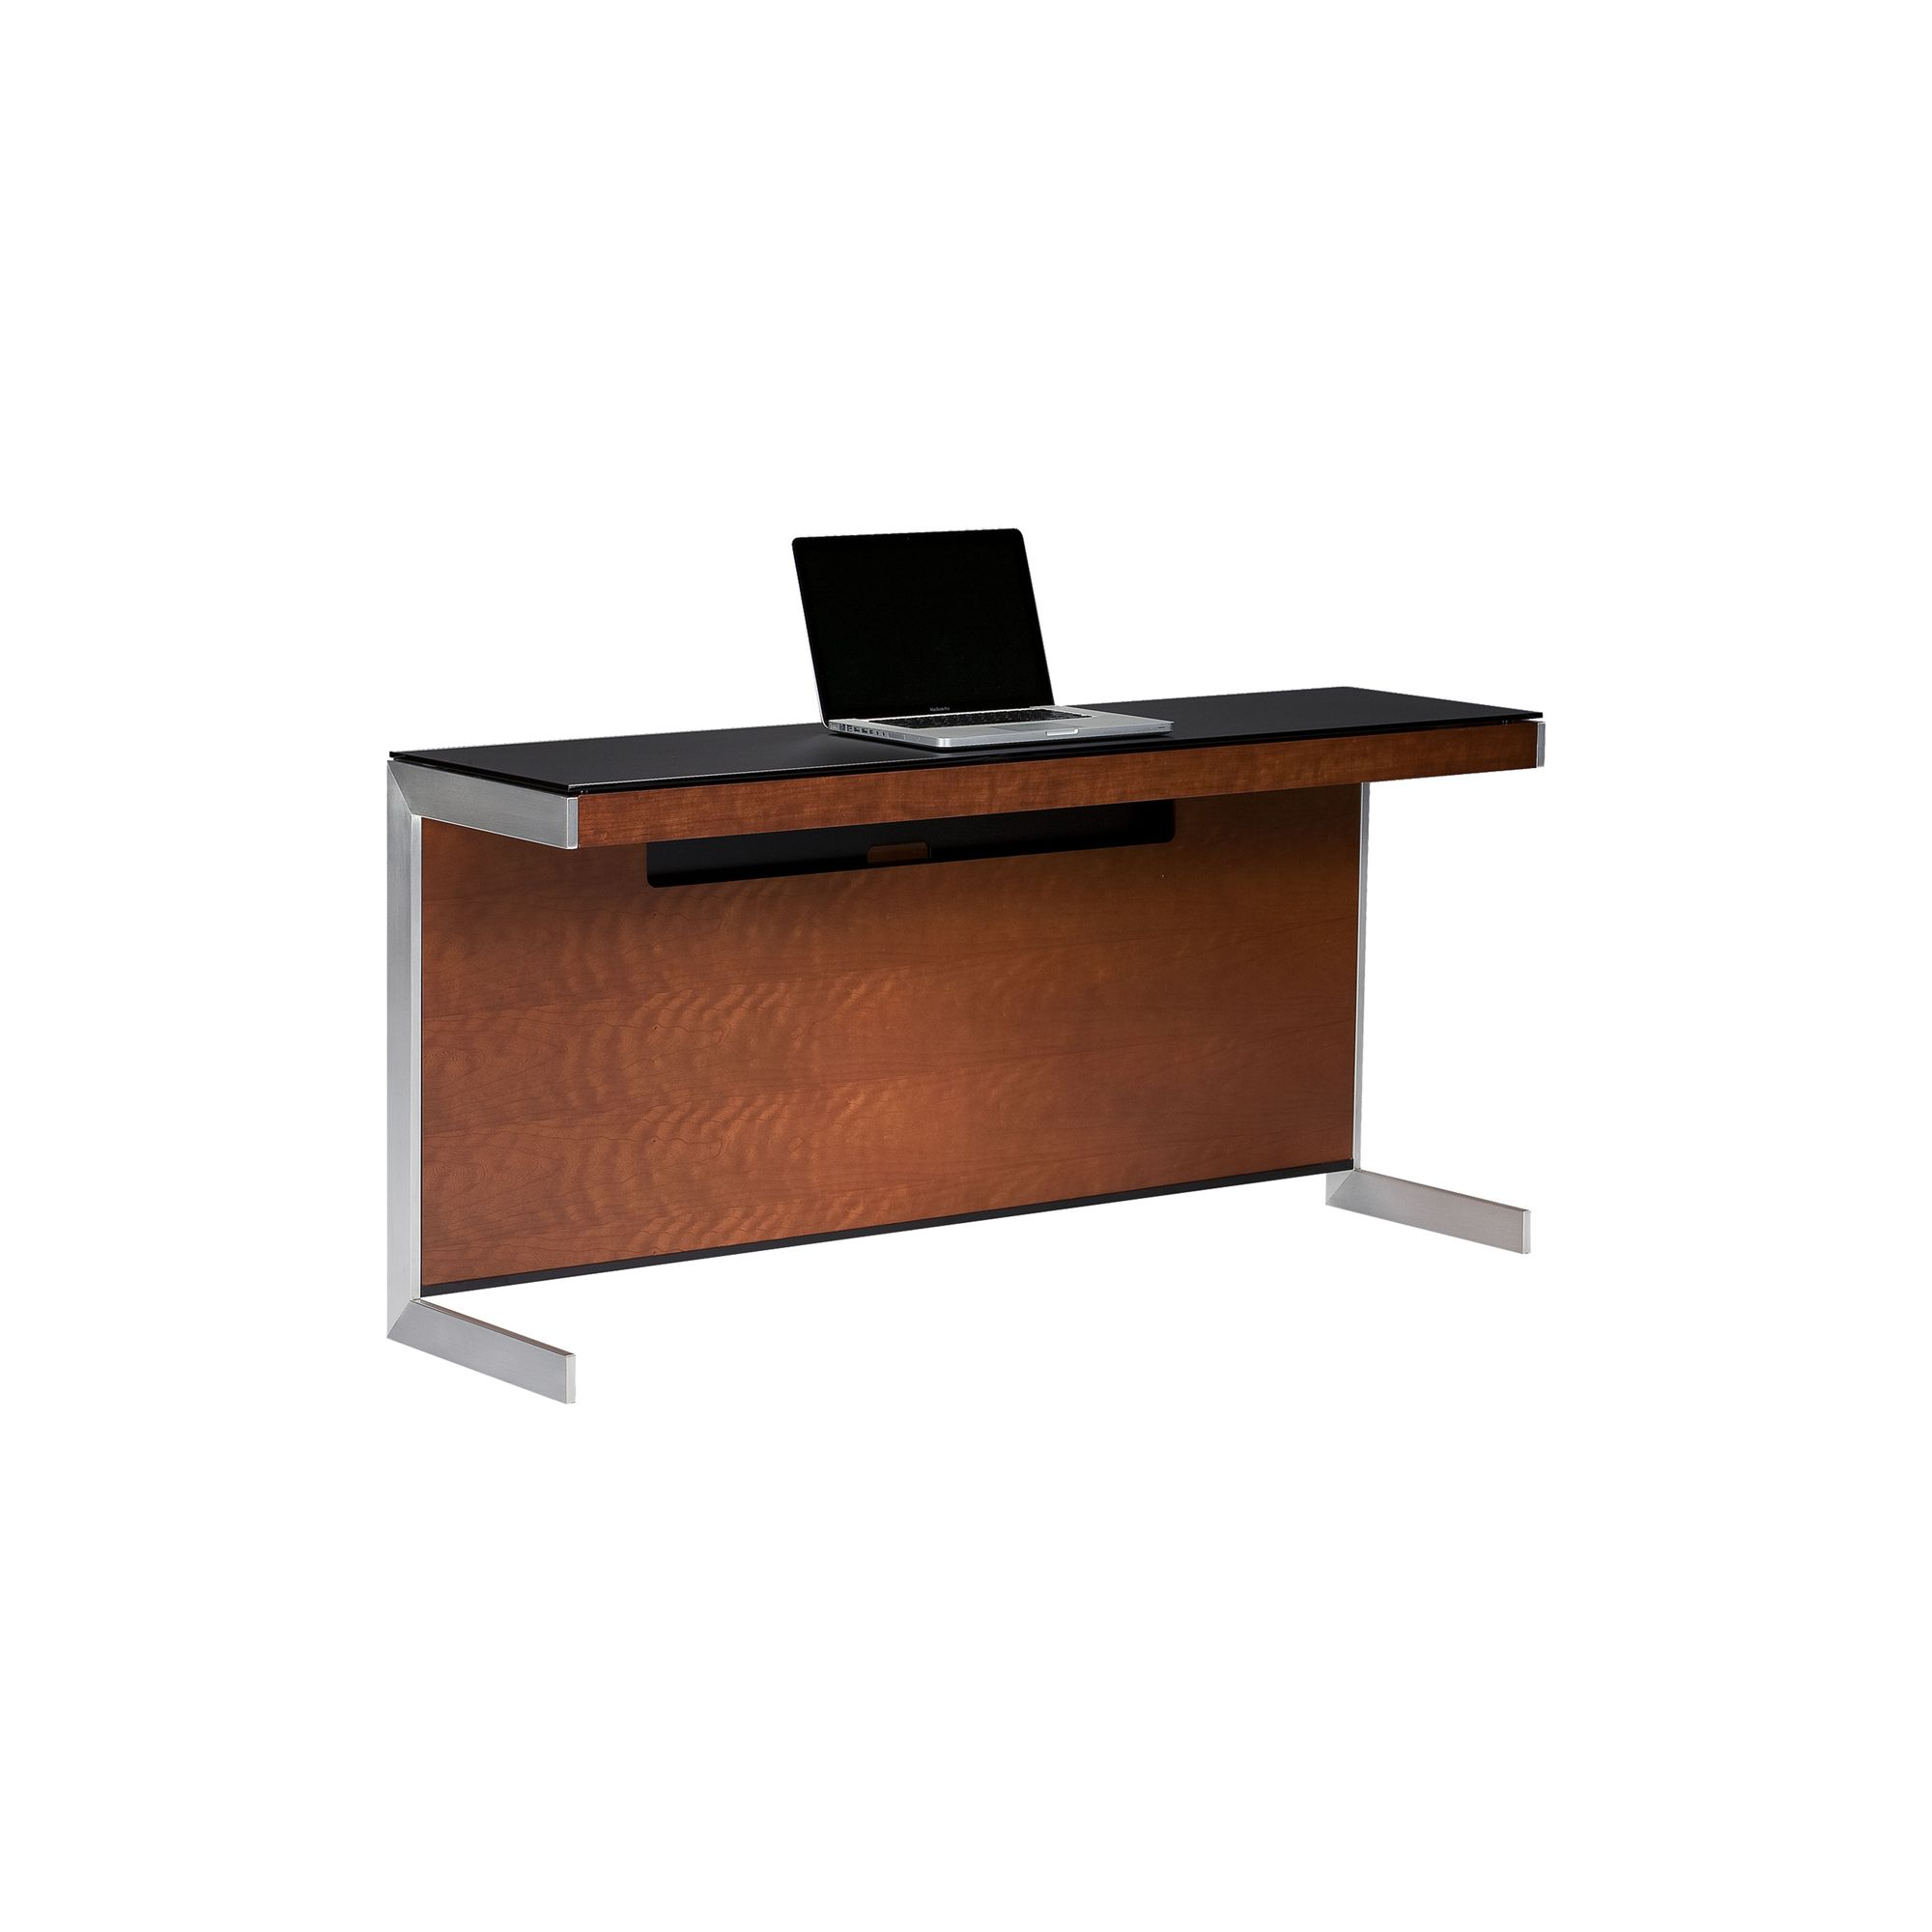 Sequel 6002 Desk in Natural Stained Cherry with Glass Top at Tescos Direct